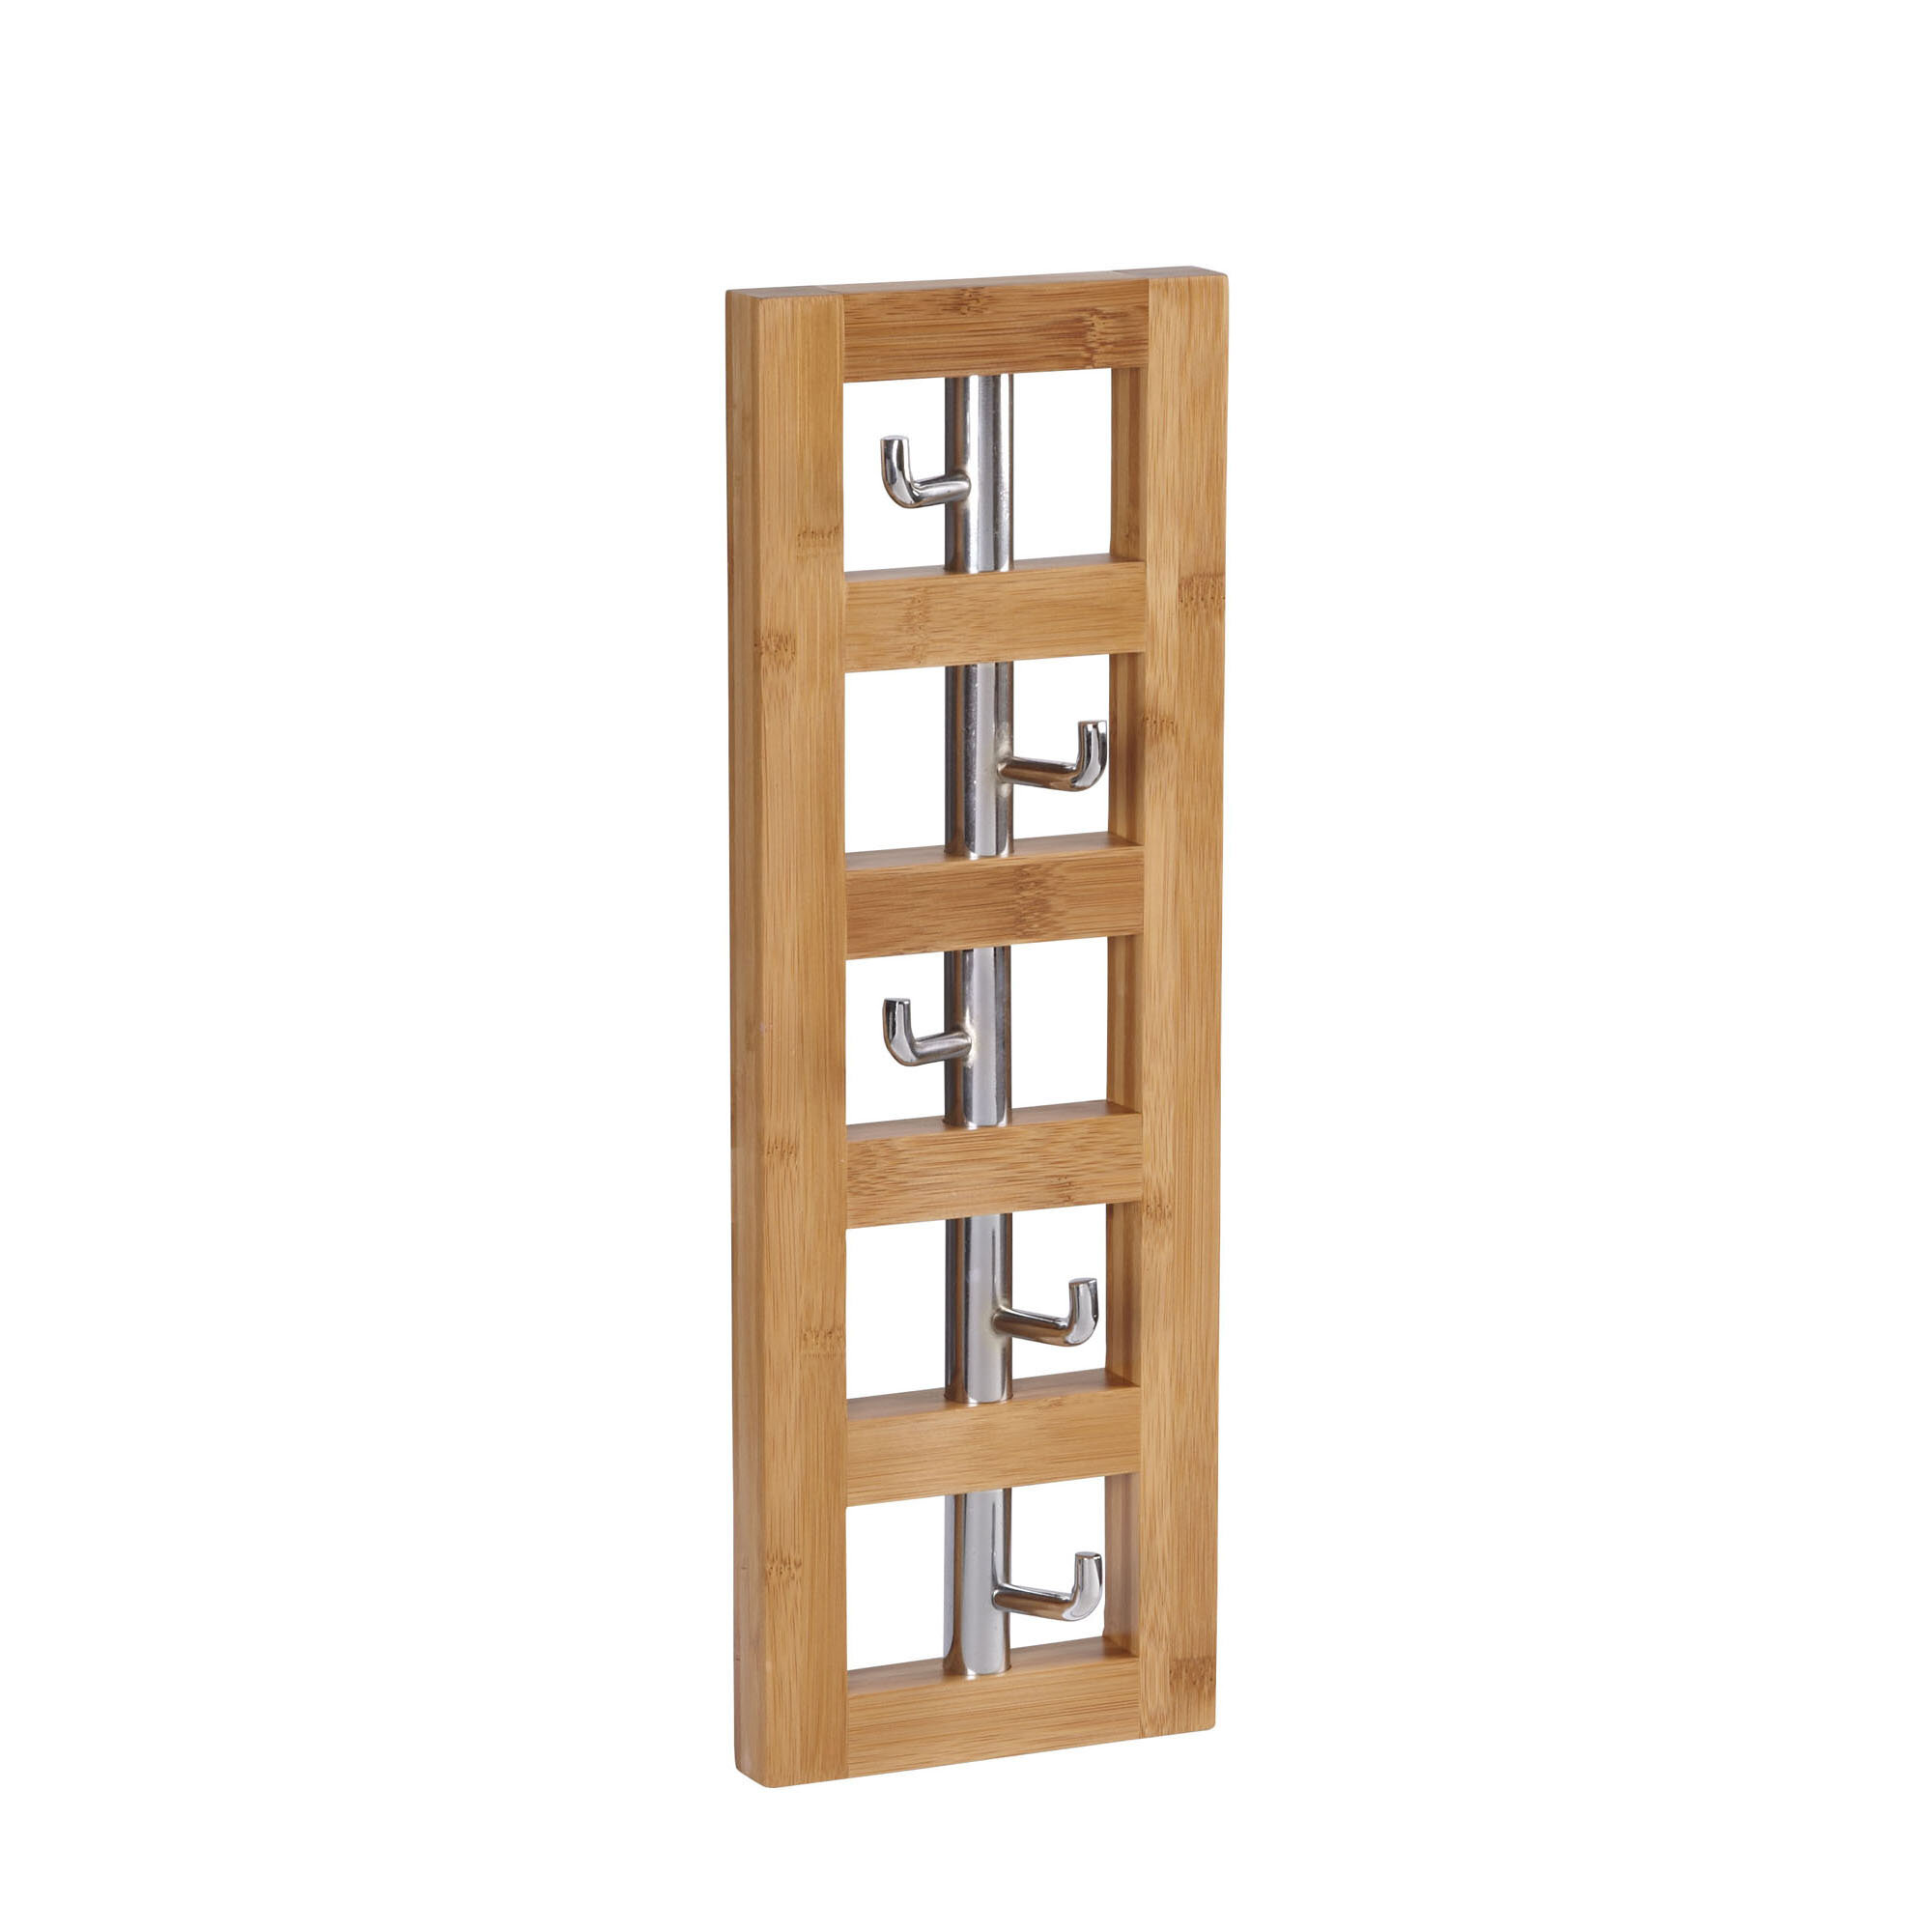 racks coat block with pin shelf home for steel perfect stainless your are that hooks creative on rack